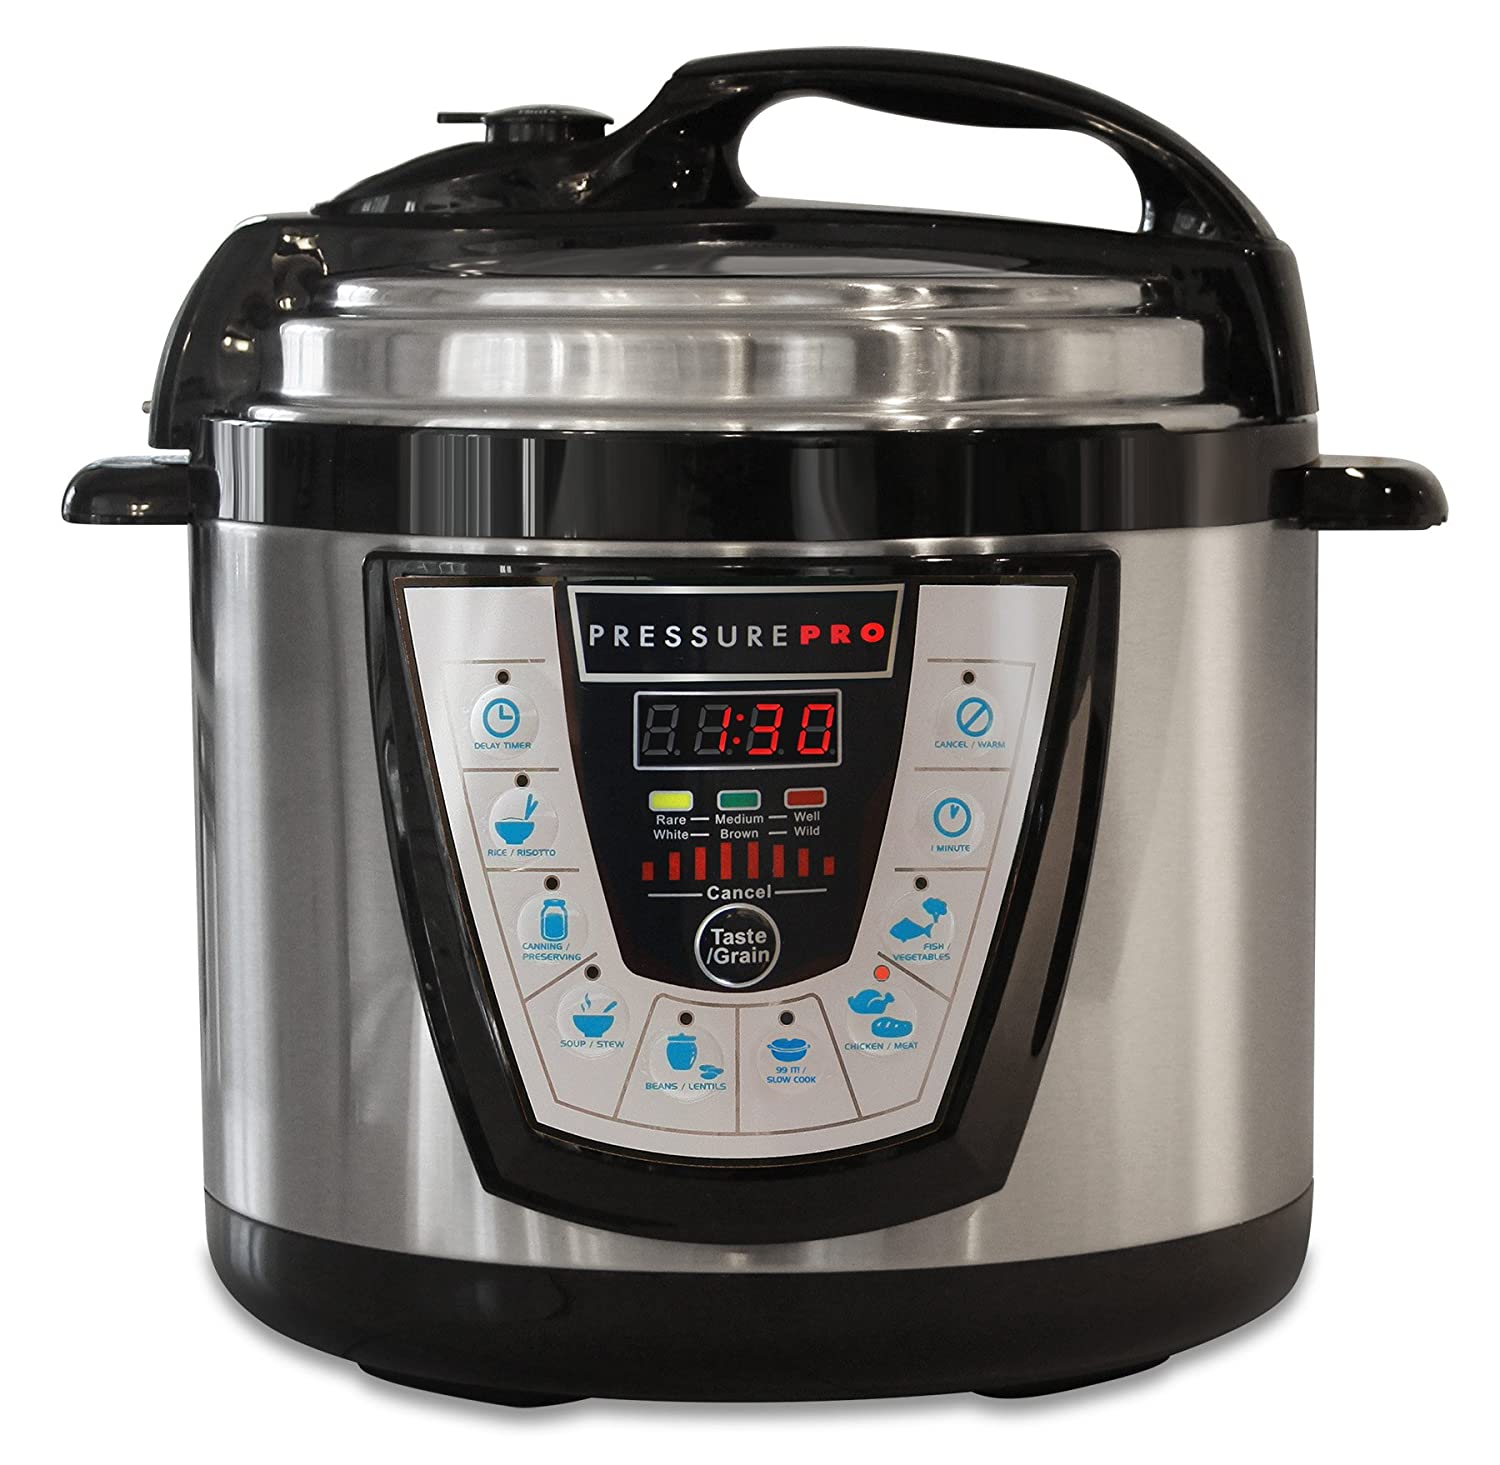 10-in-1 pressurepro 4 qt pressure cooker